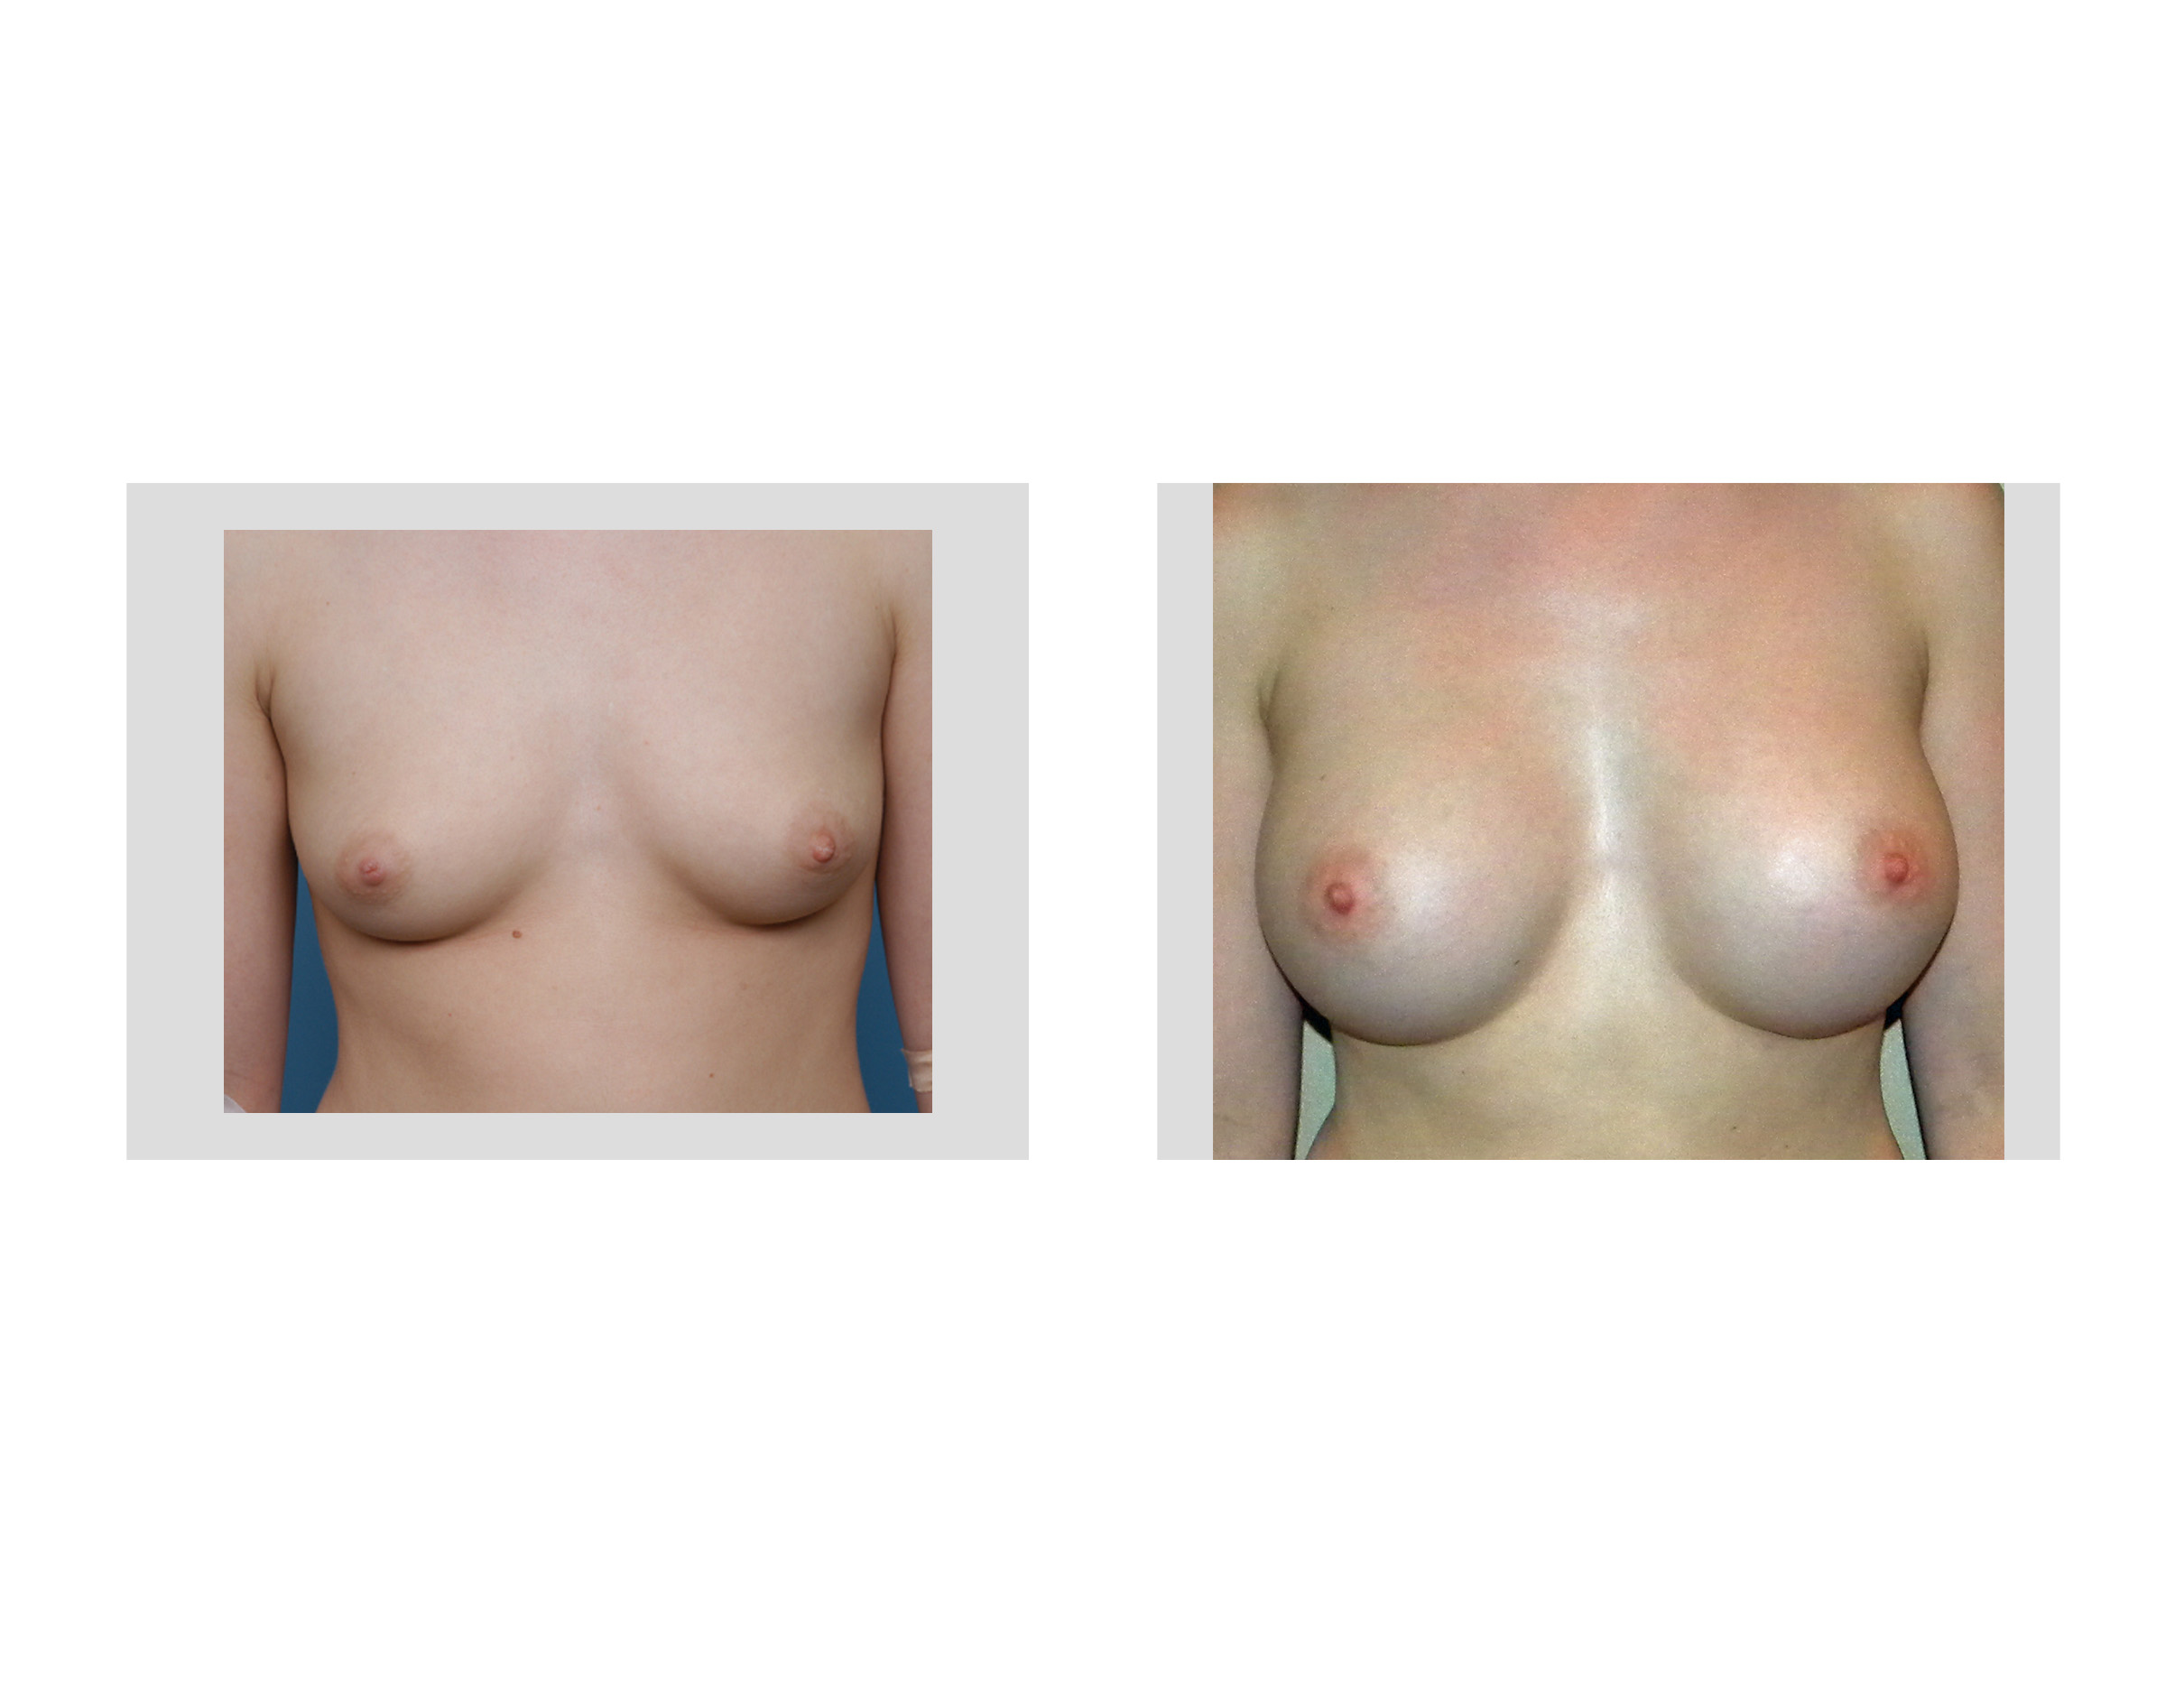 Opinion you bilateral breast buds